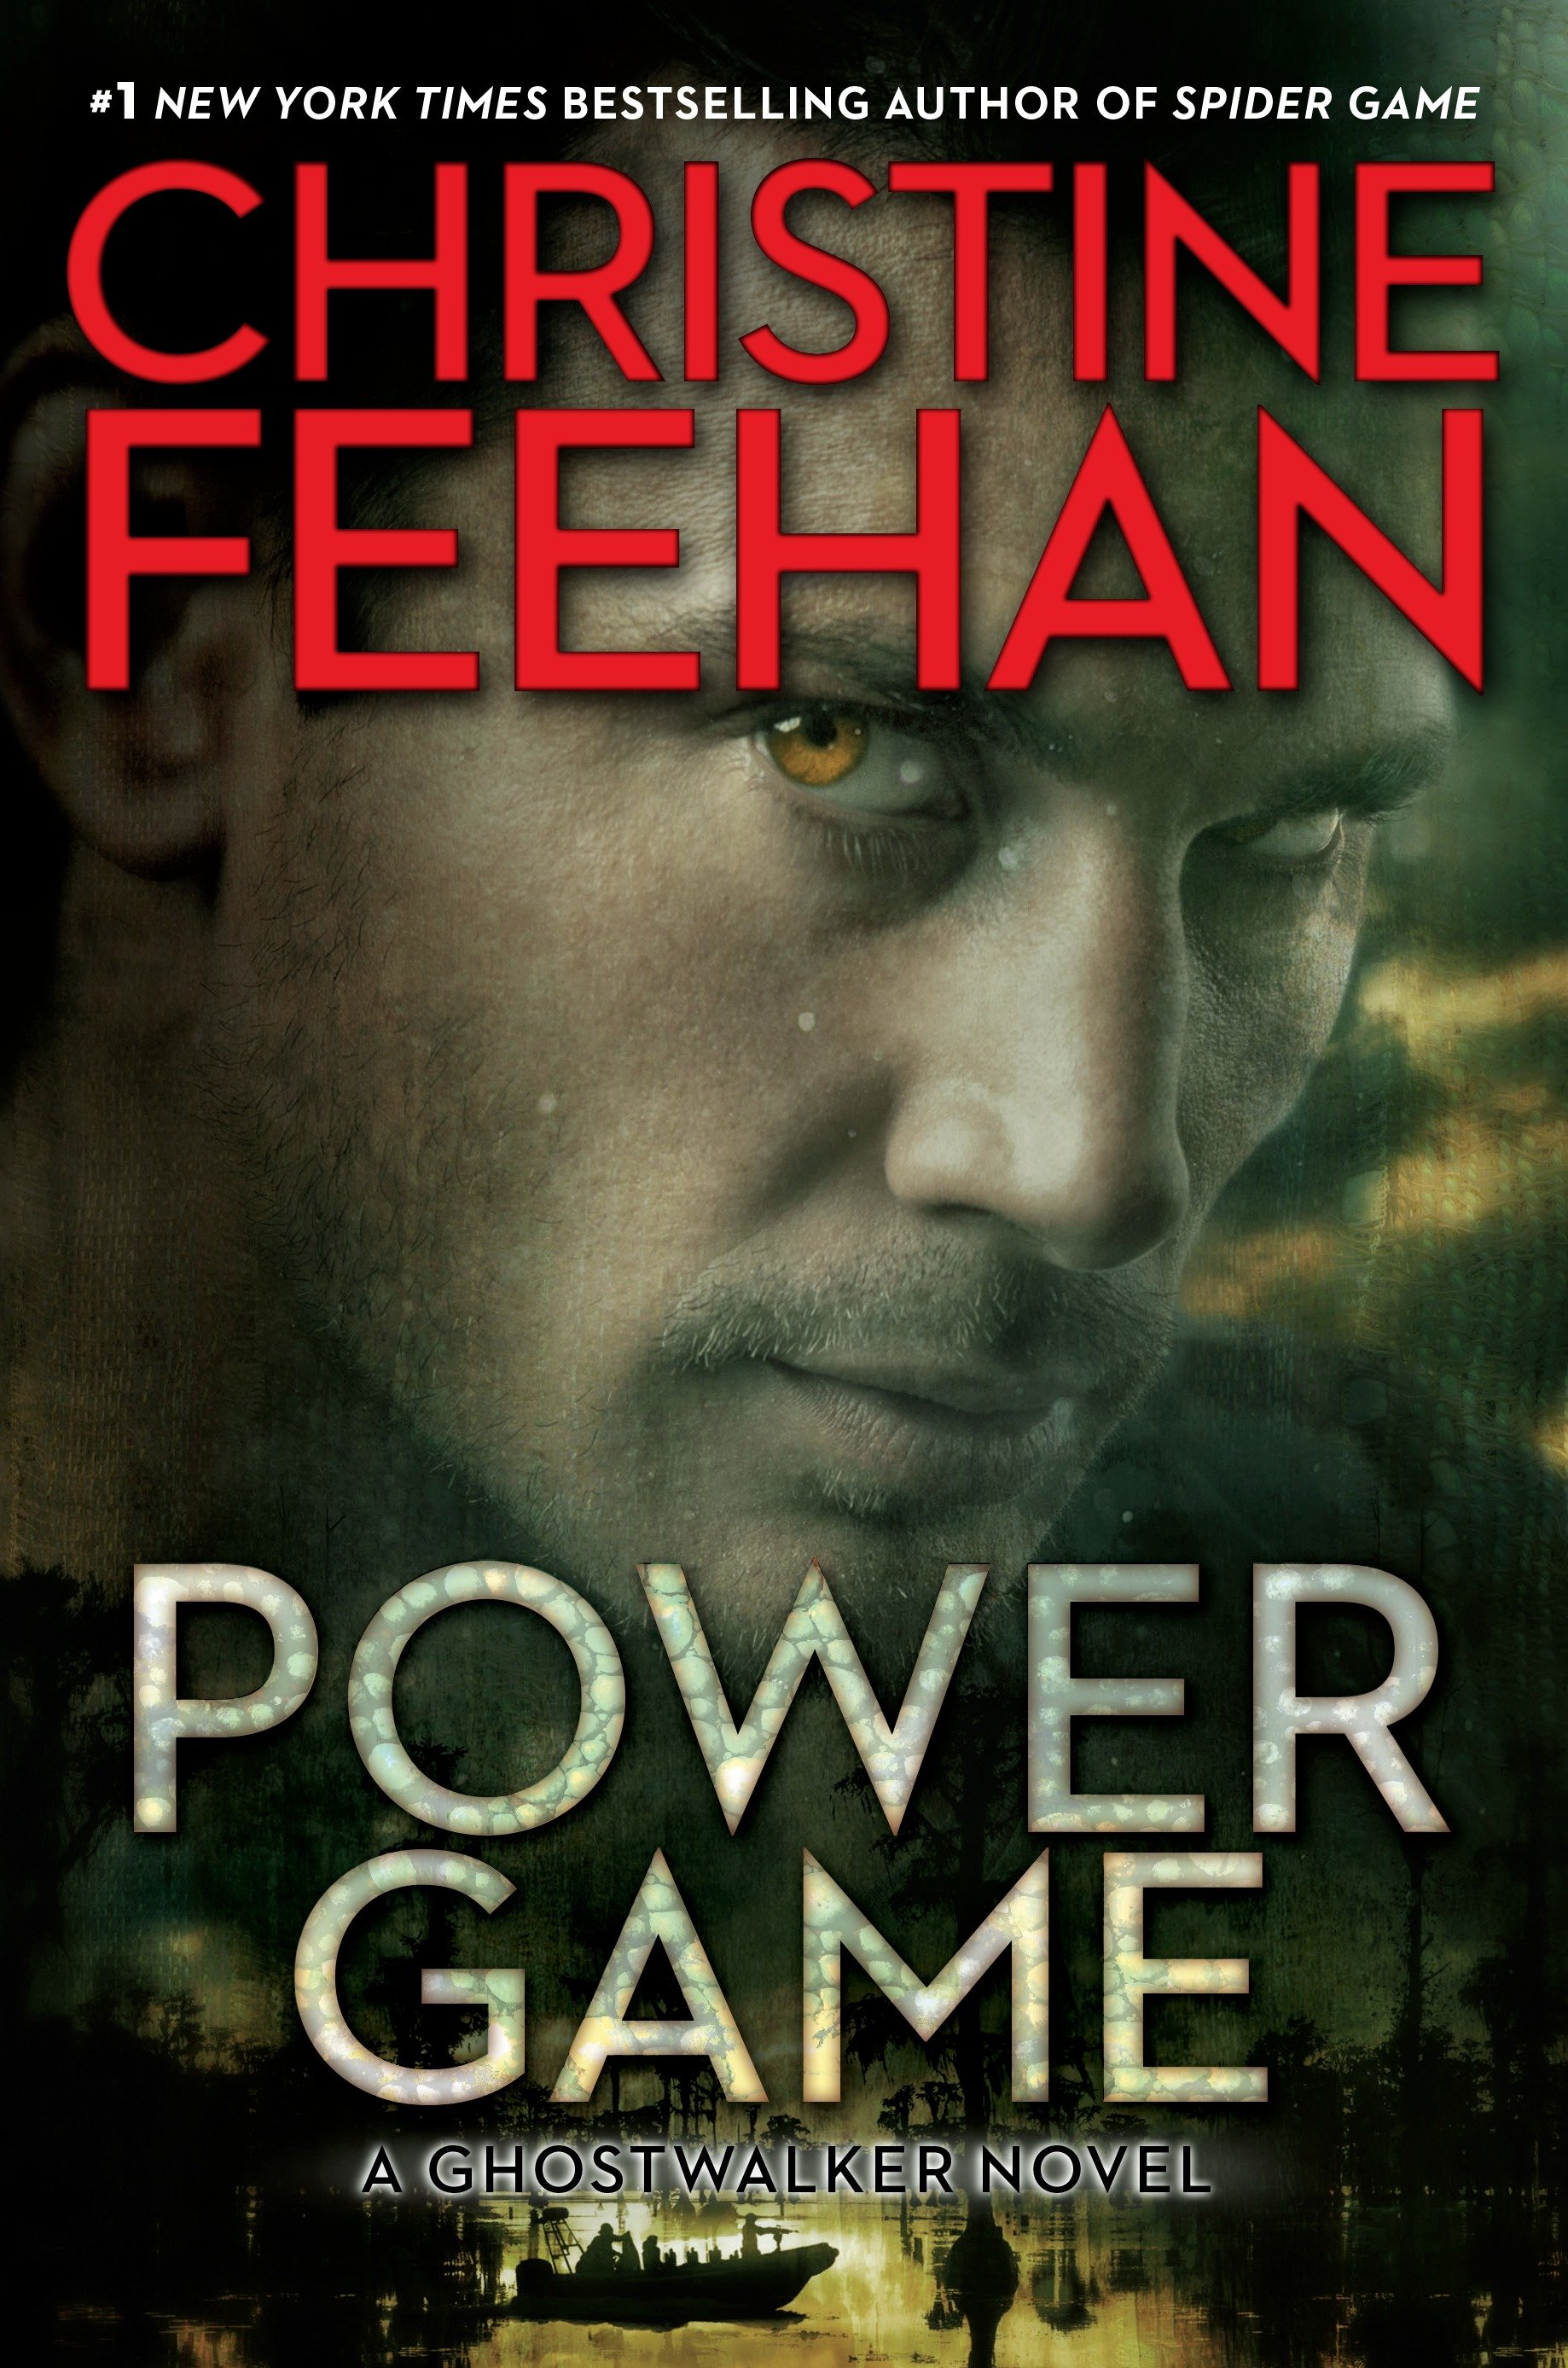 Power game cover image